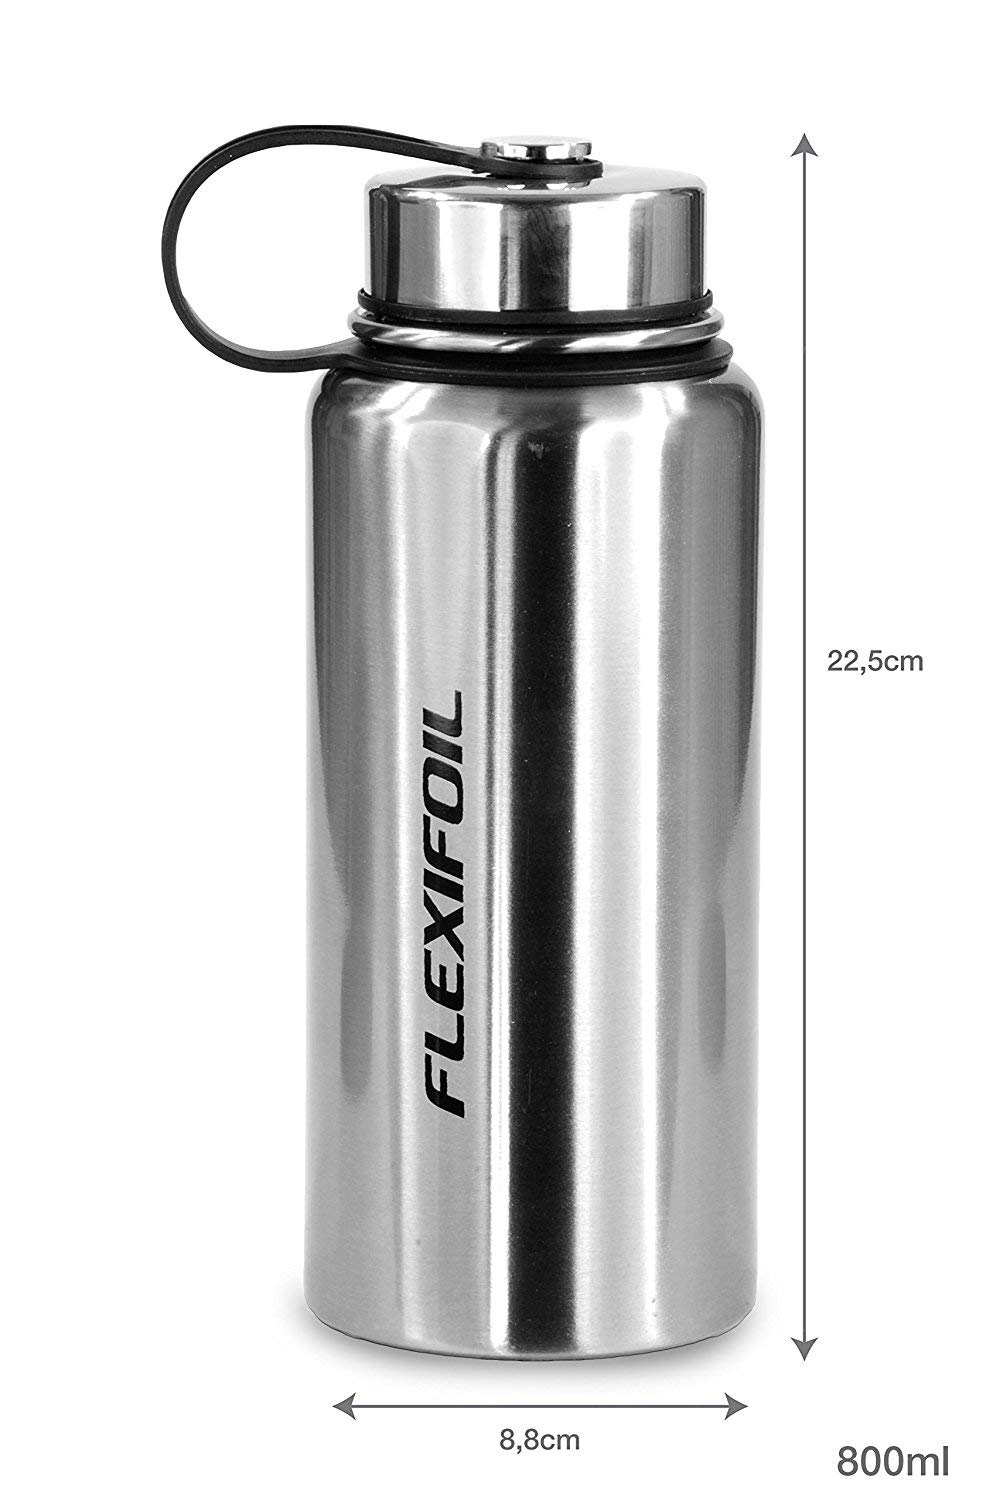 Flexifoil Thermos Flask - Best 800ml Vacuum Thermal for Coffee Tea and Water Drinking - Travel and Camping - Perfect Choice of Thermoses inc. Bottle Stopper 5